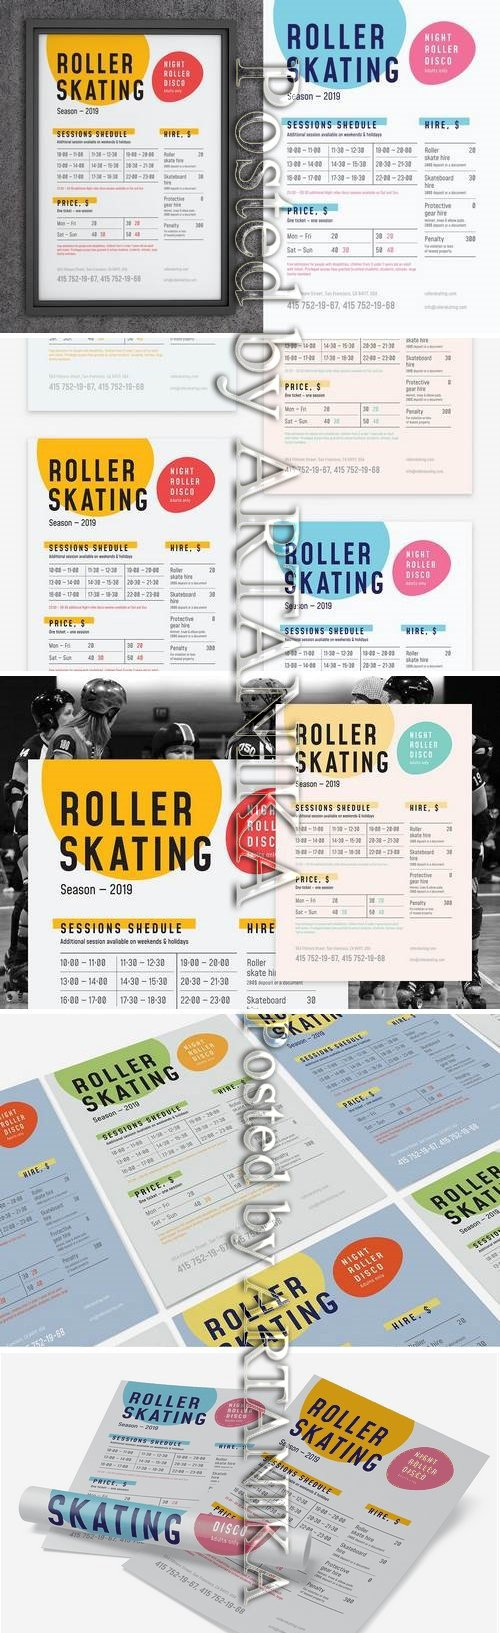 Roller Skating Schedule Poster Template